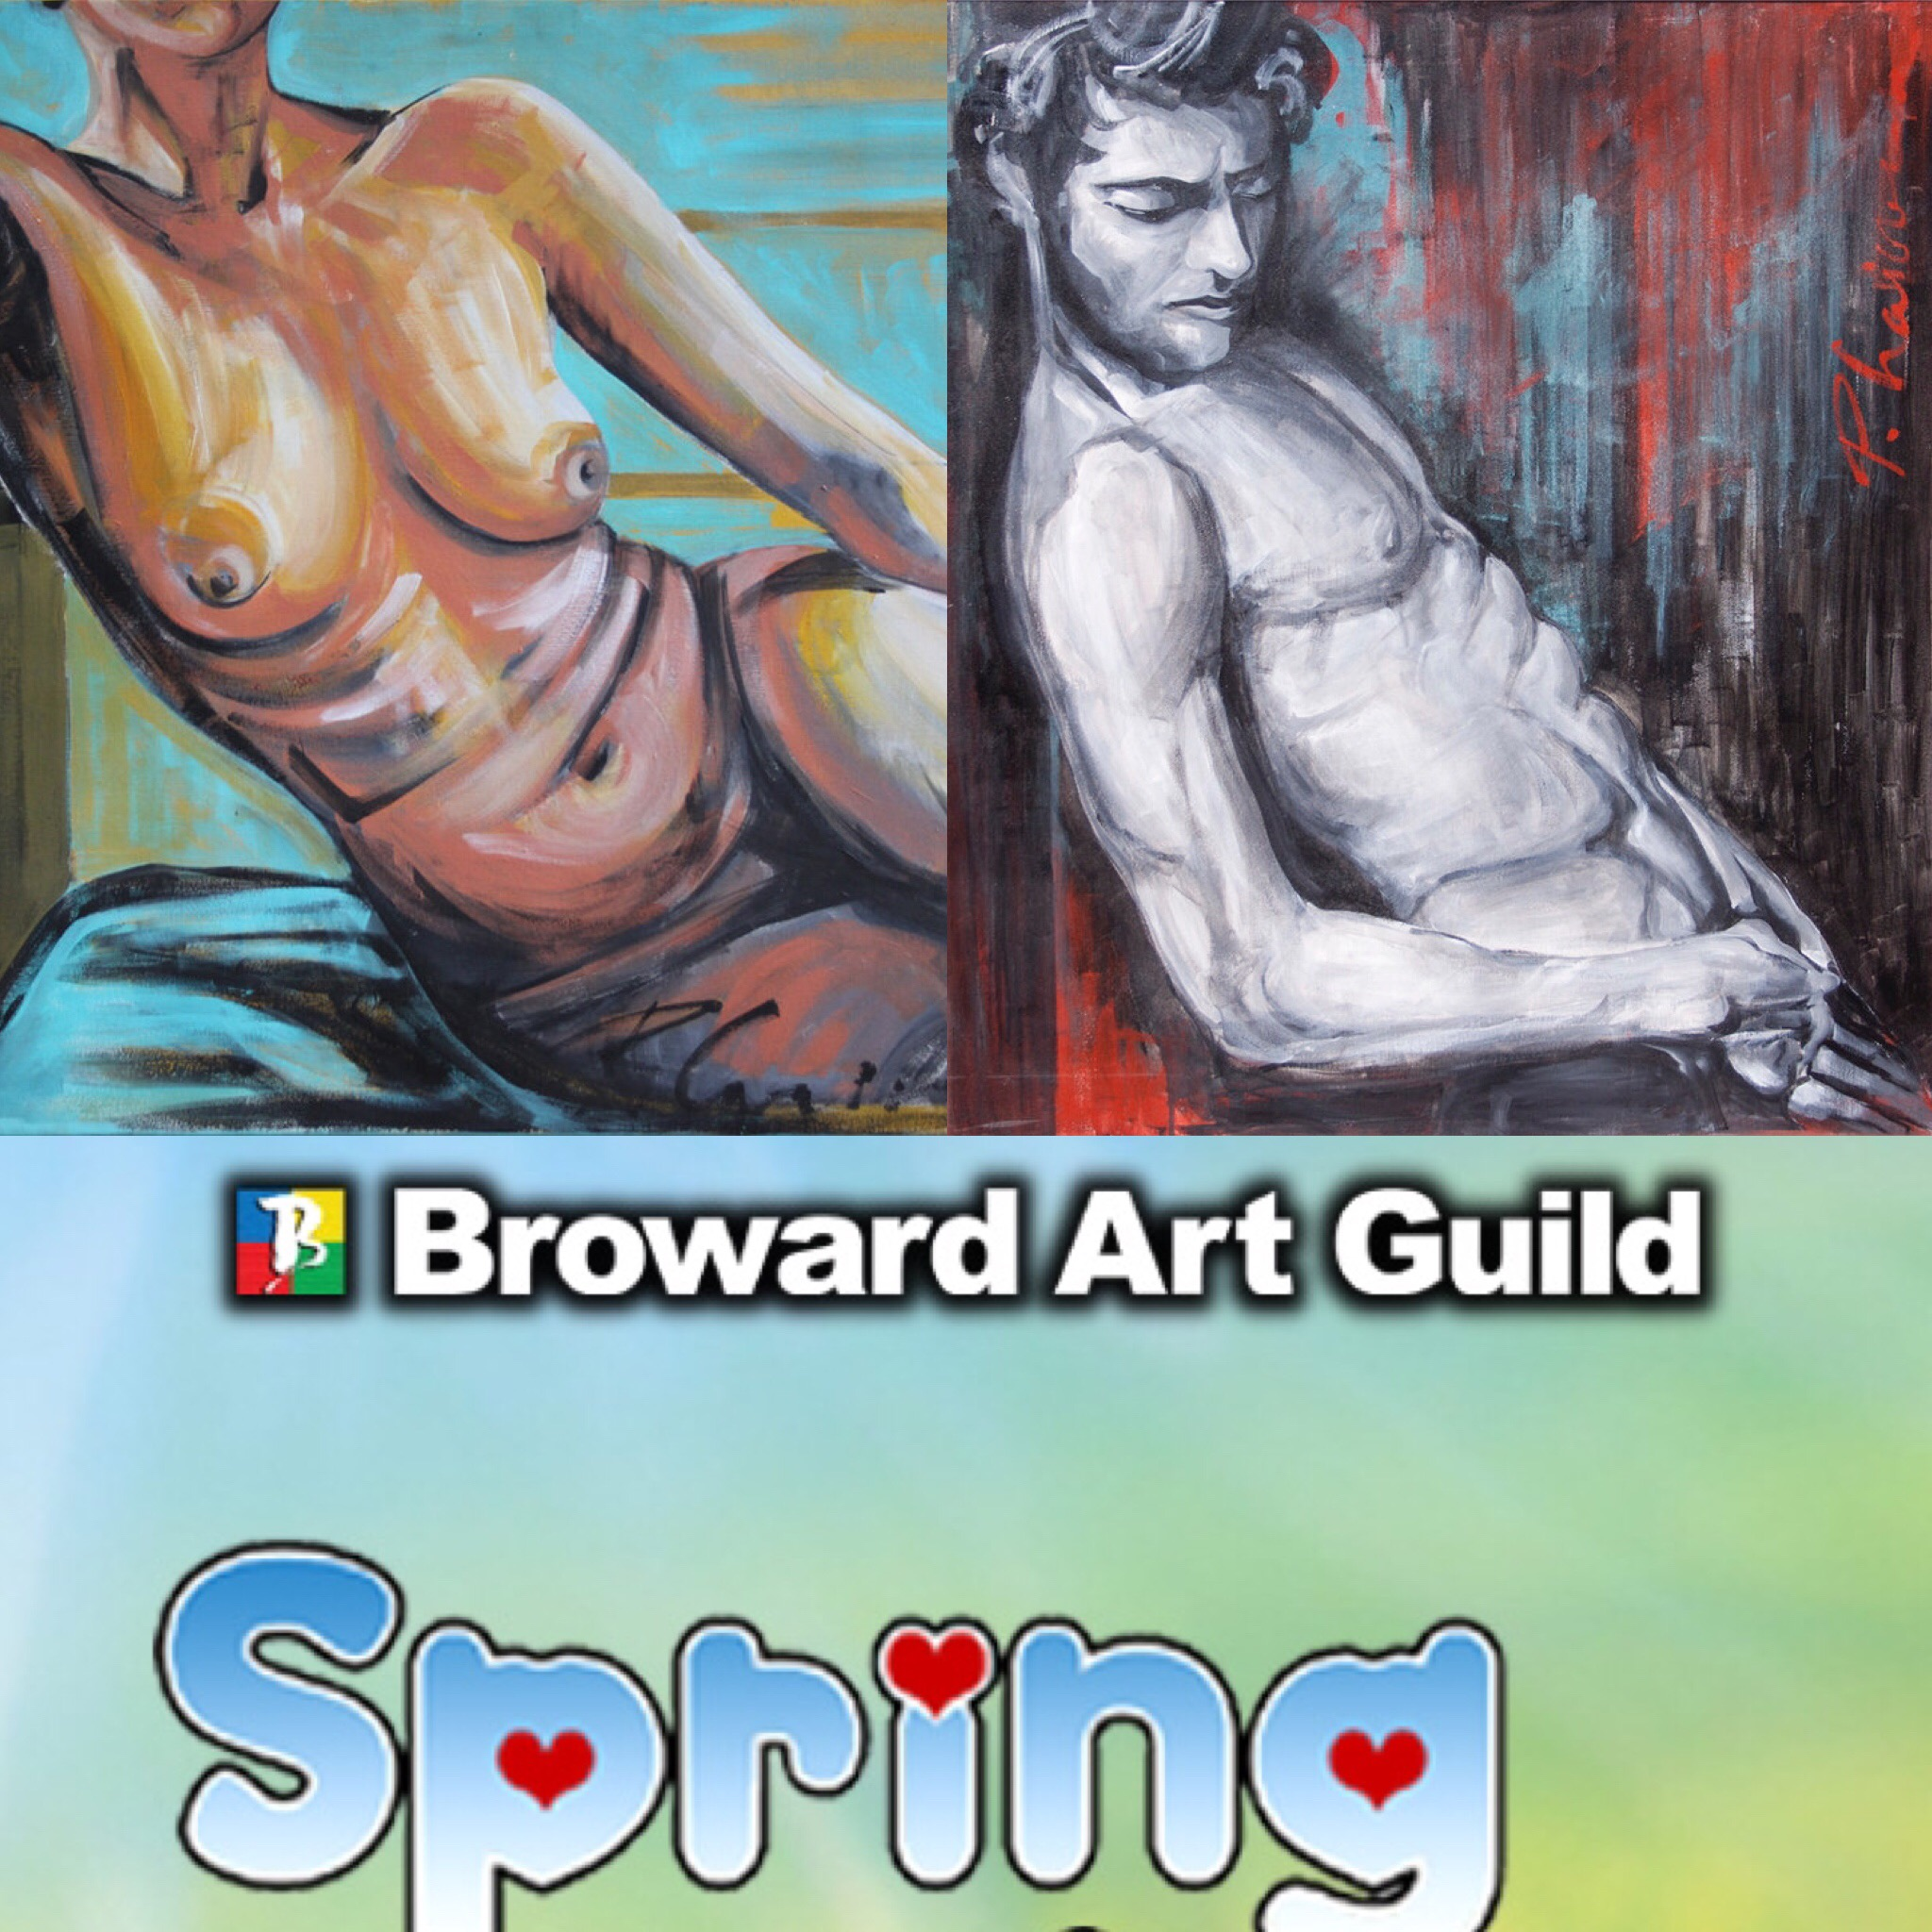 broward art guild paula craioveanu 2.jpg